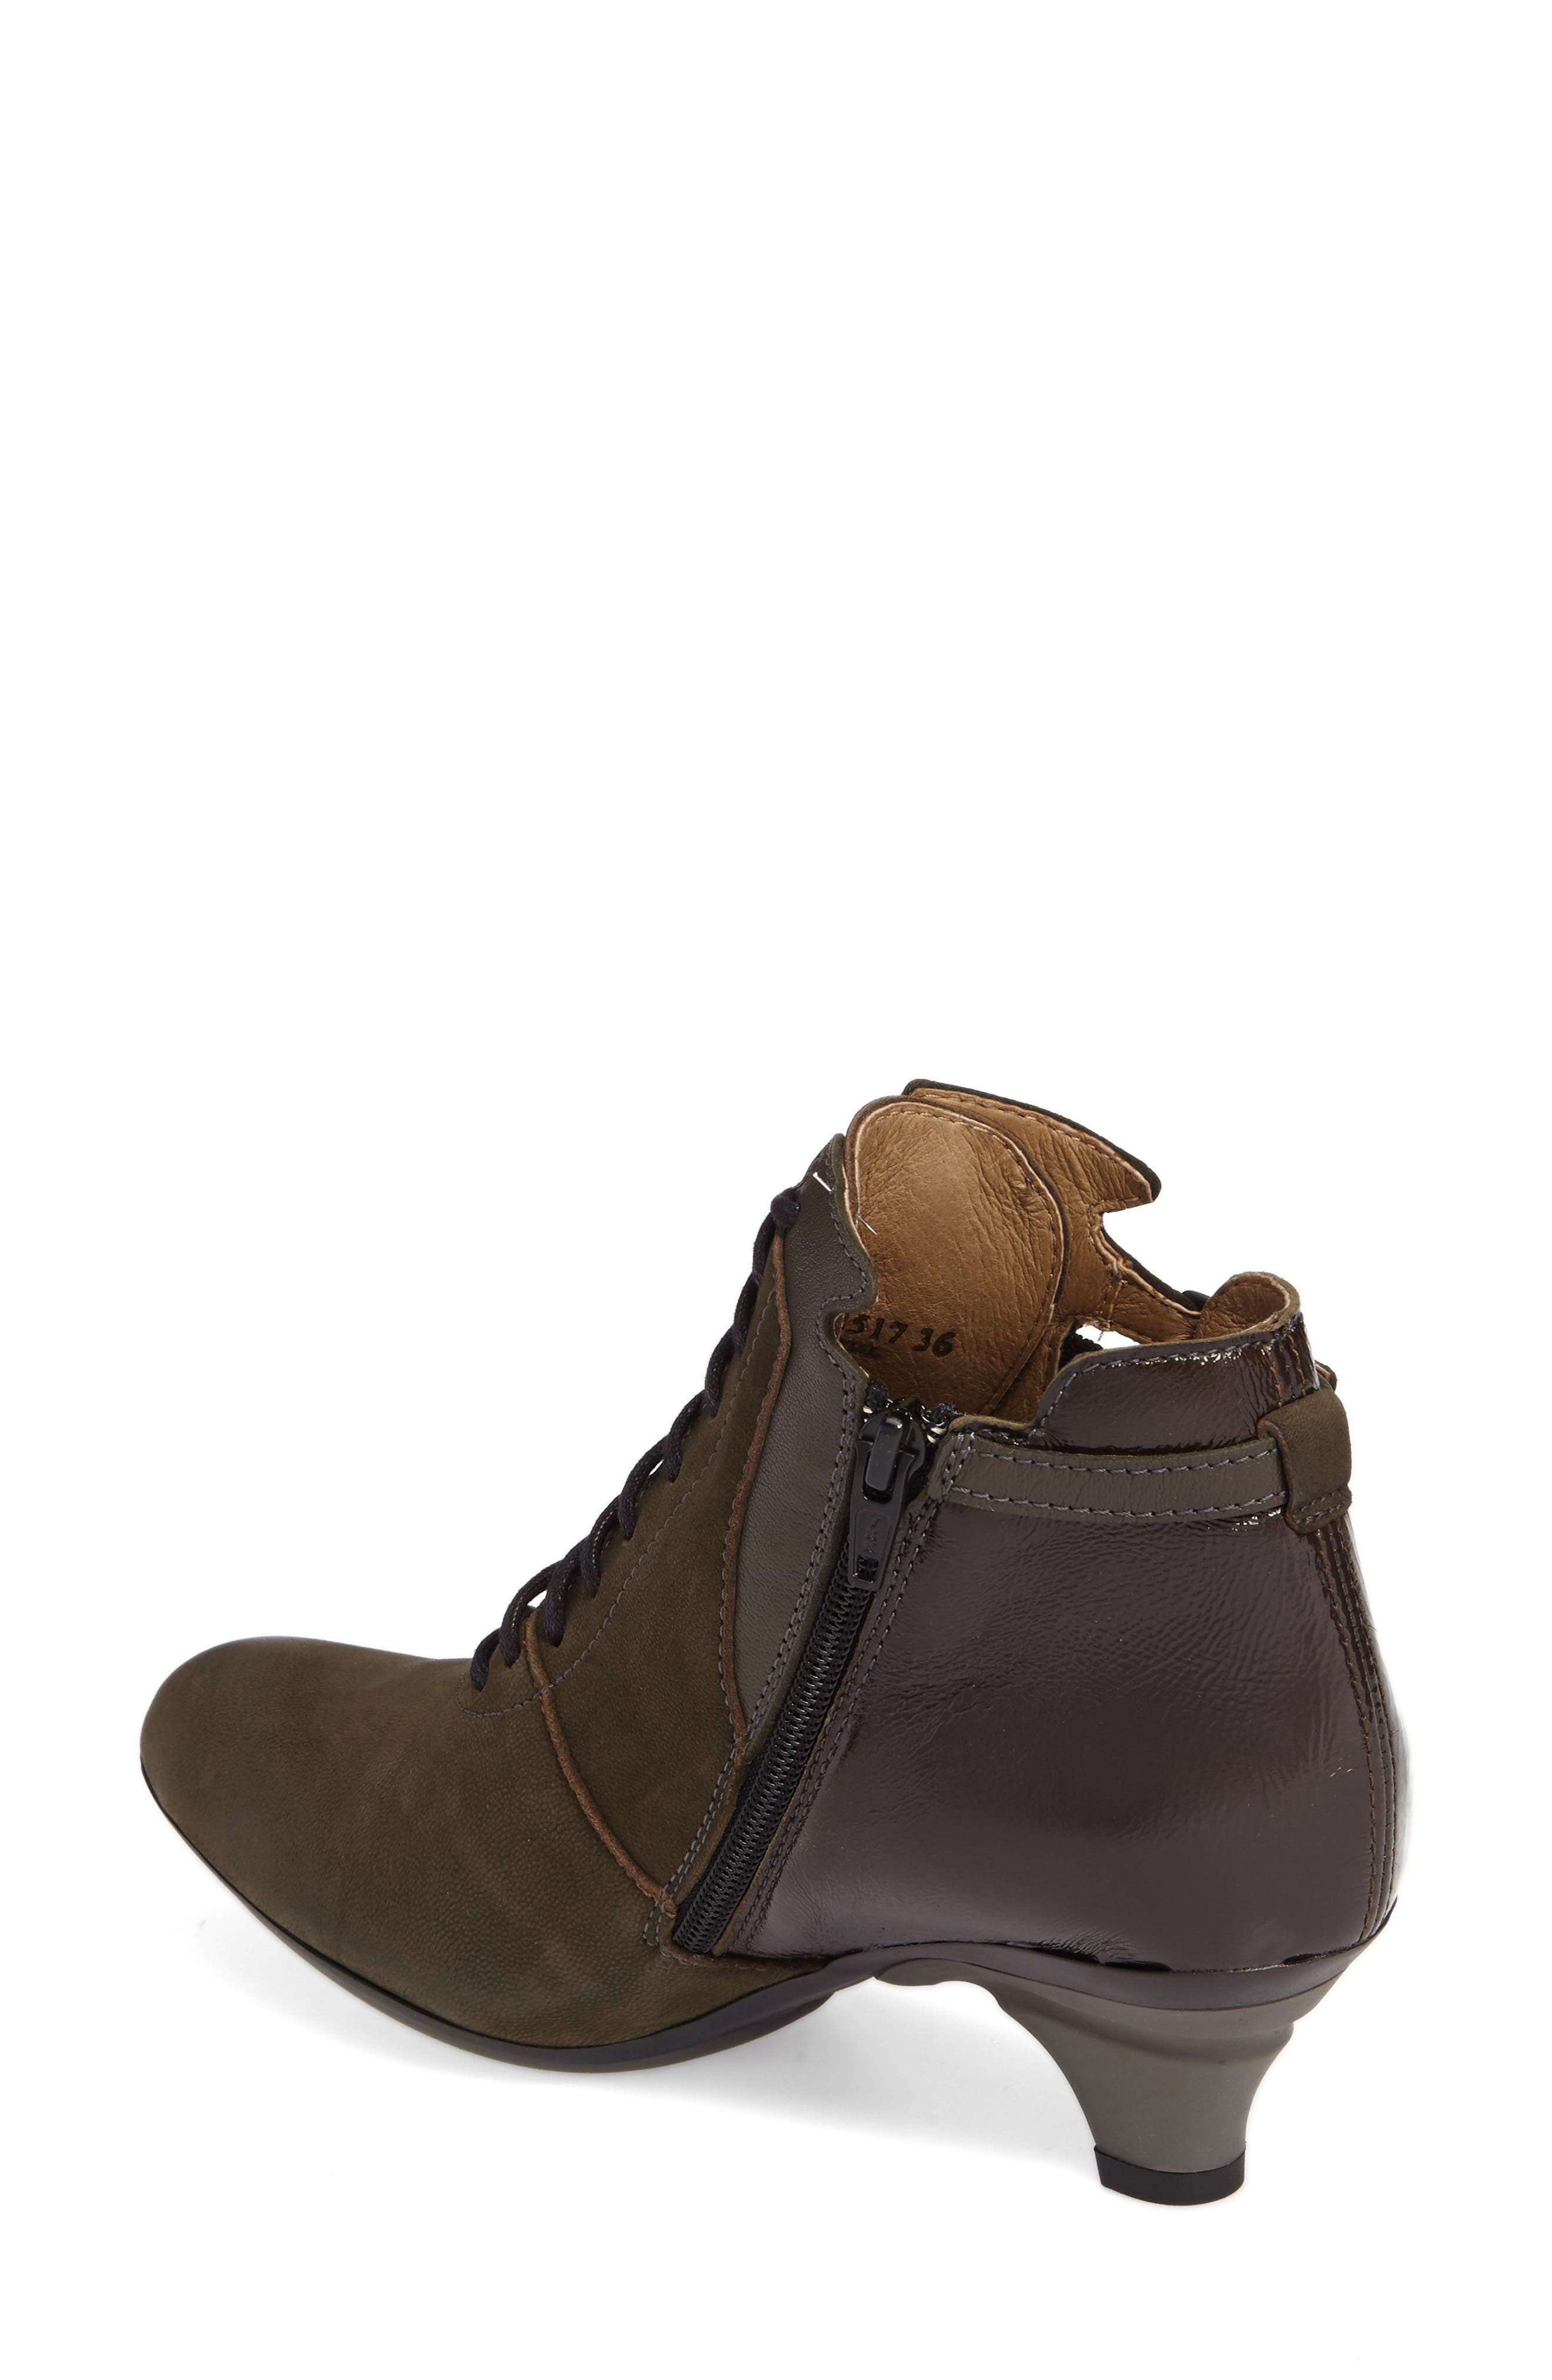 Bugs Bootie,                             Alternate thumbnail 2, color,                             Seaweed Leather